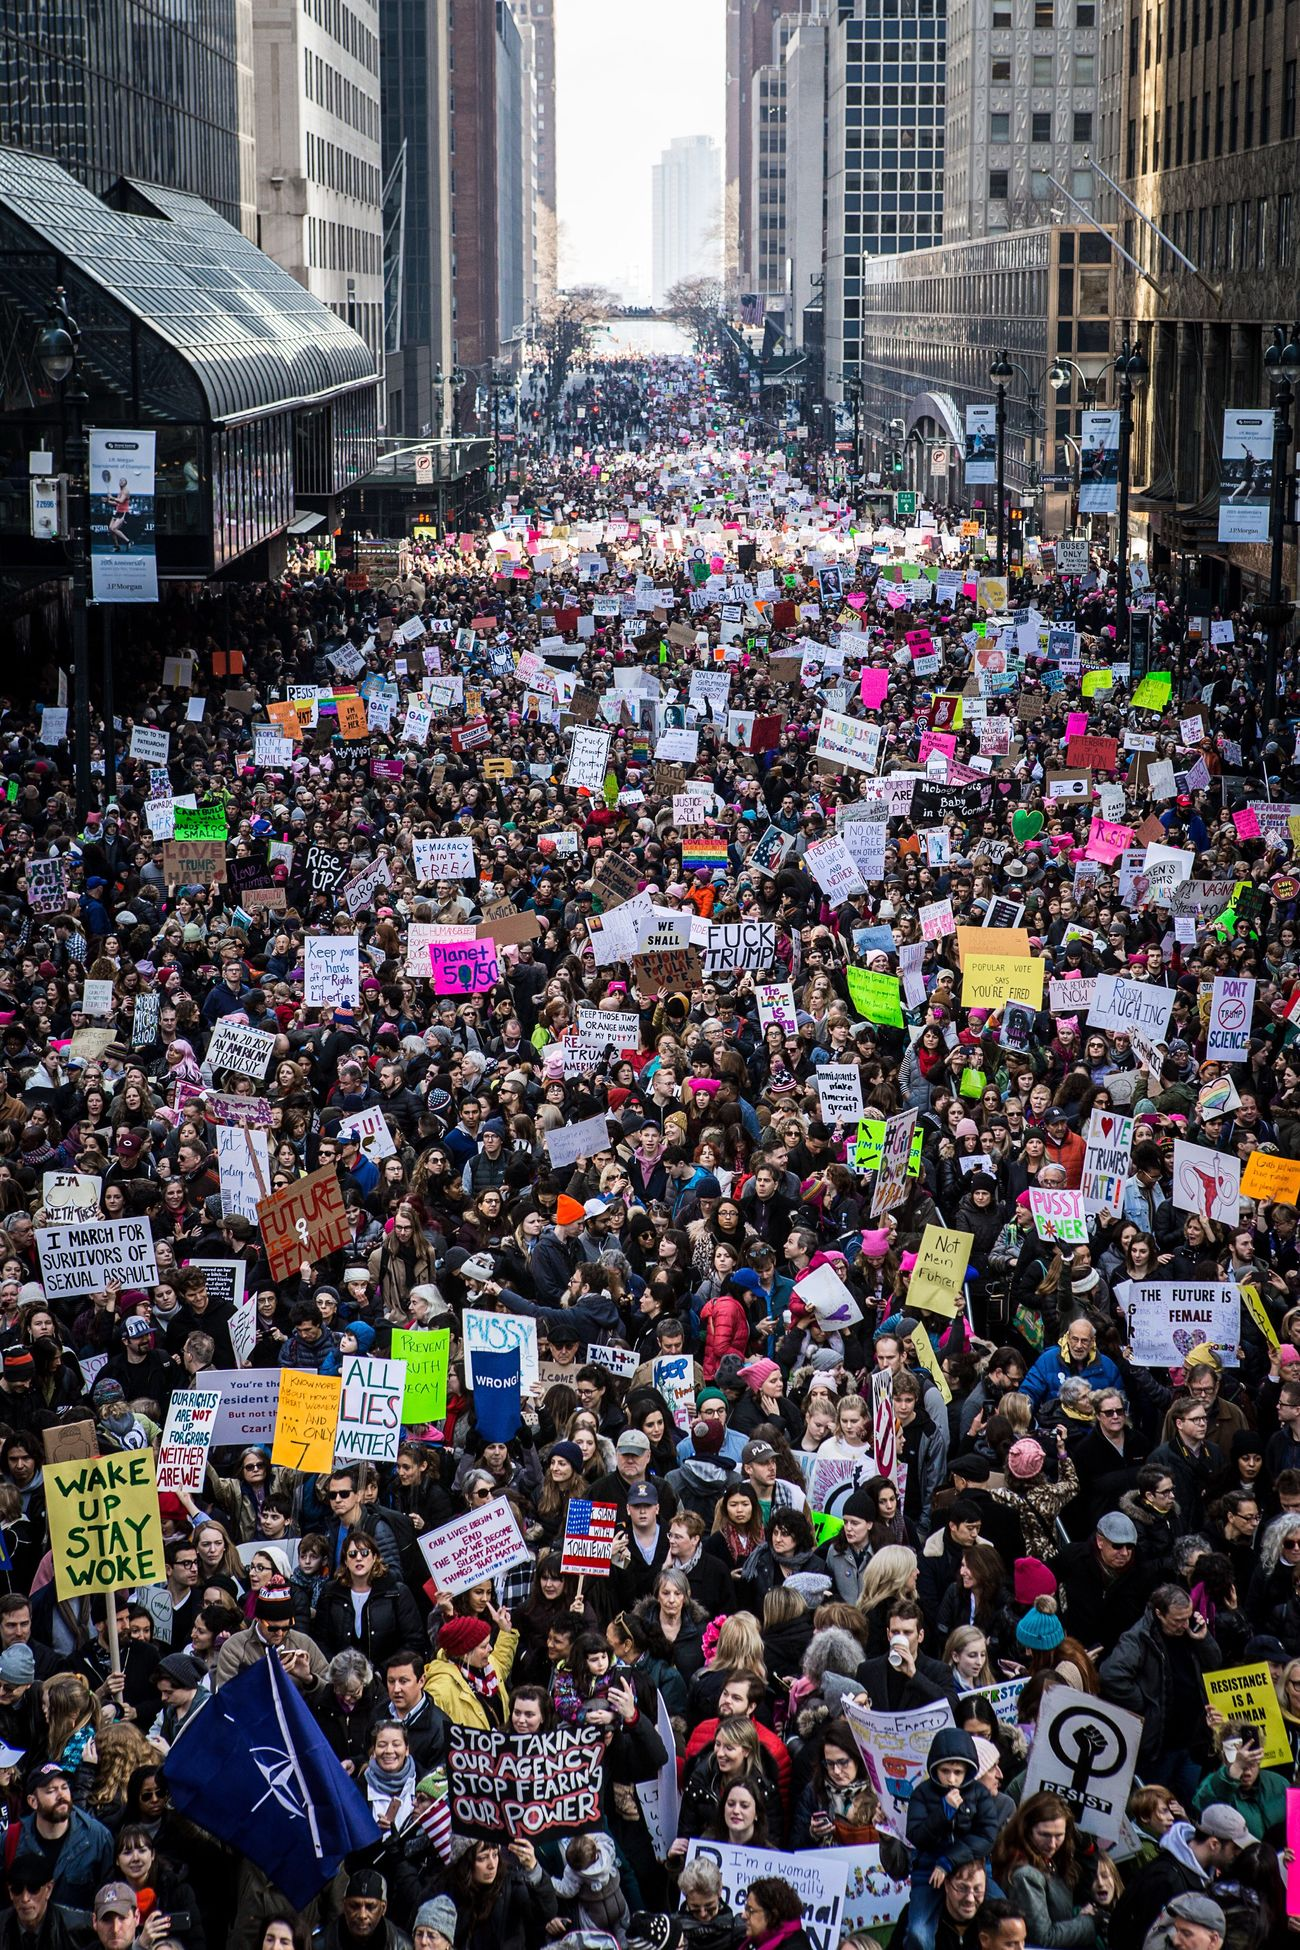 Womensmarch March Protest Crowd Trump